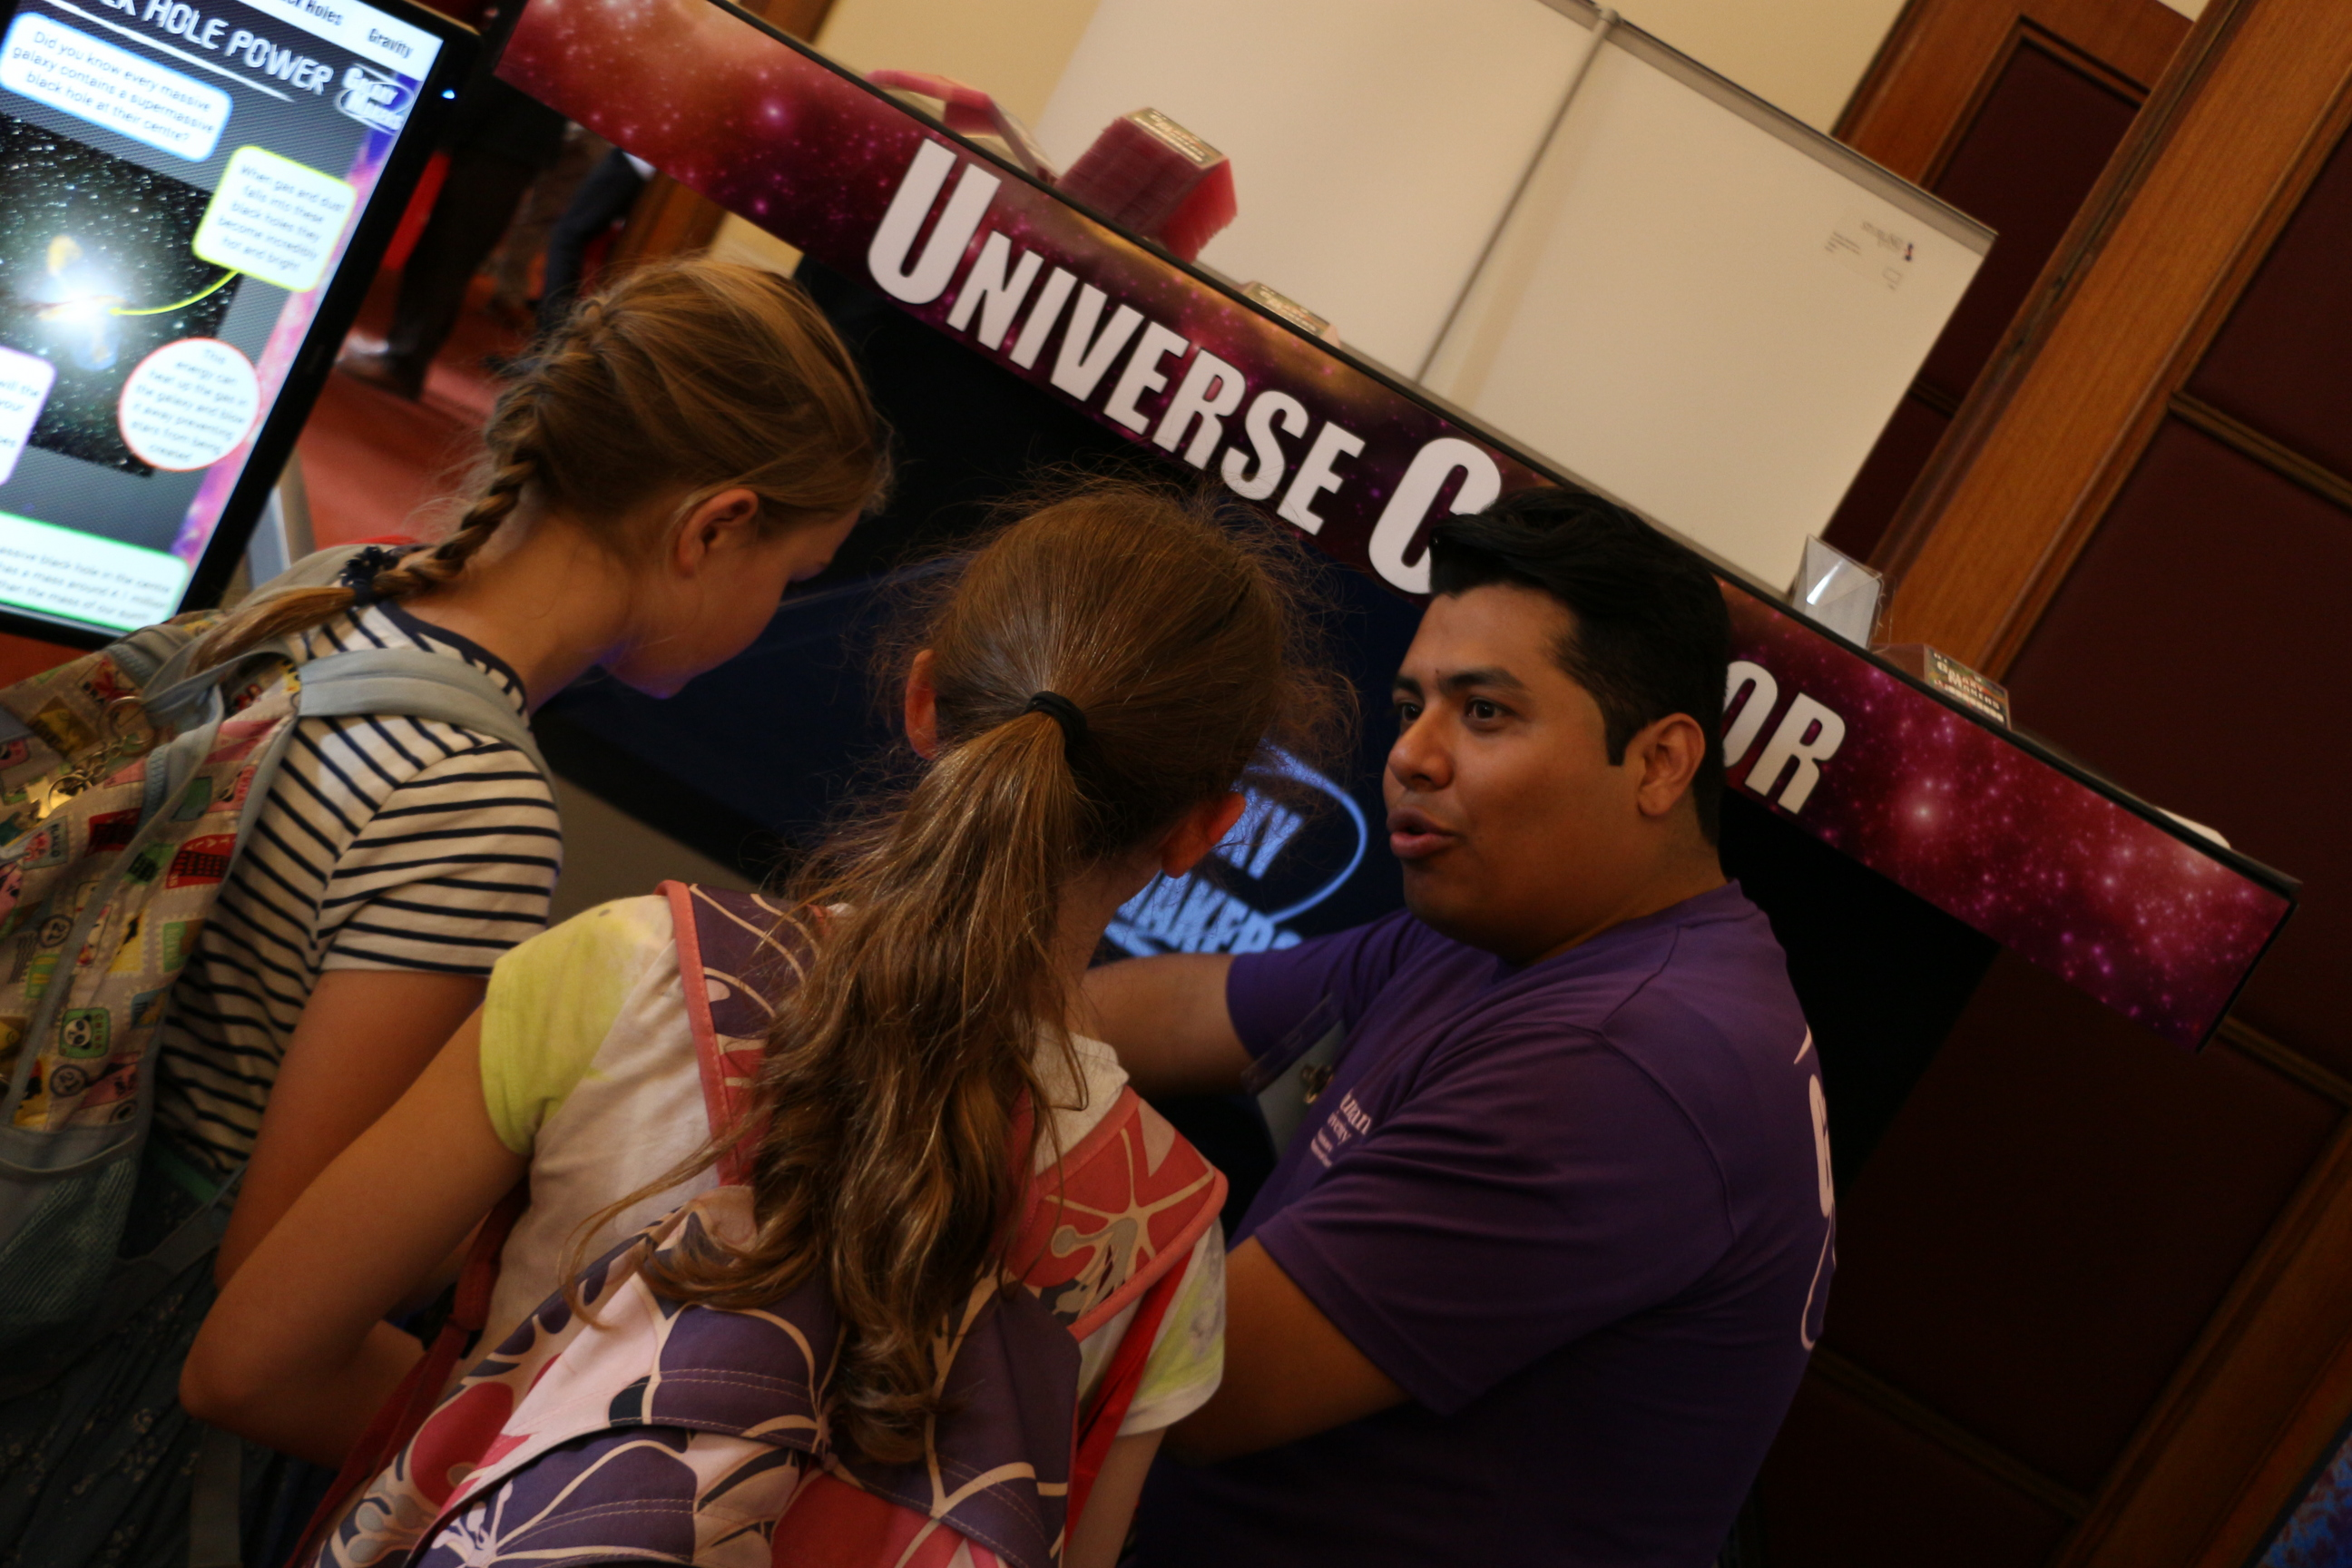 People using the explore the Universe exhibit